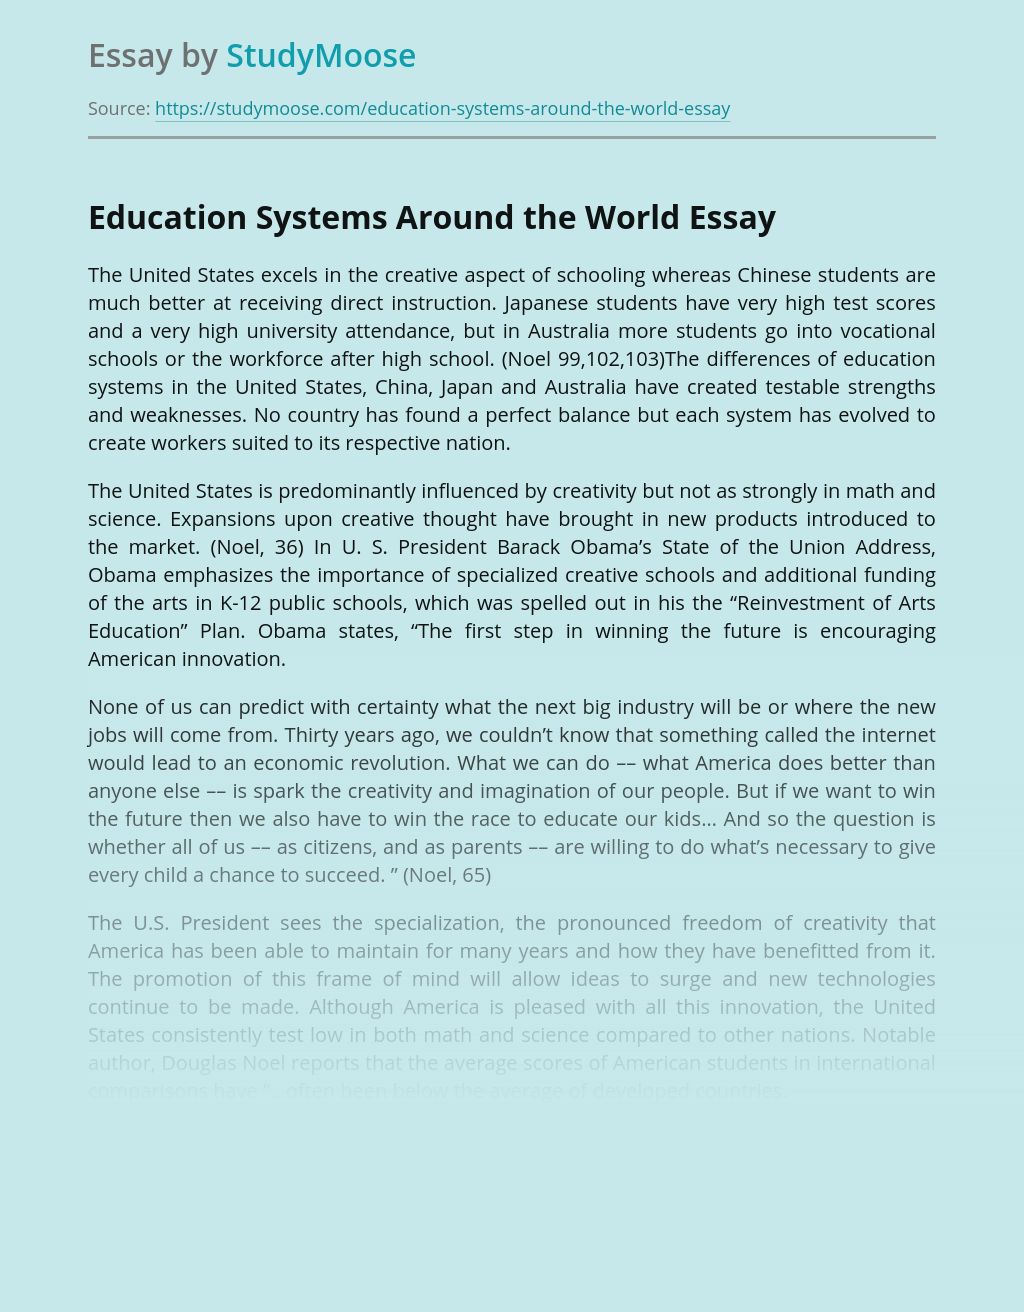 Education Systems Around the World